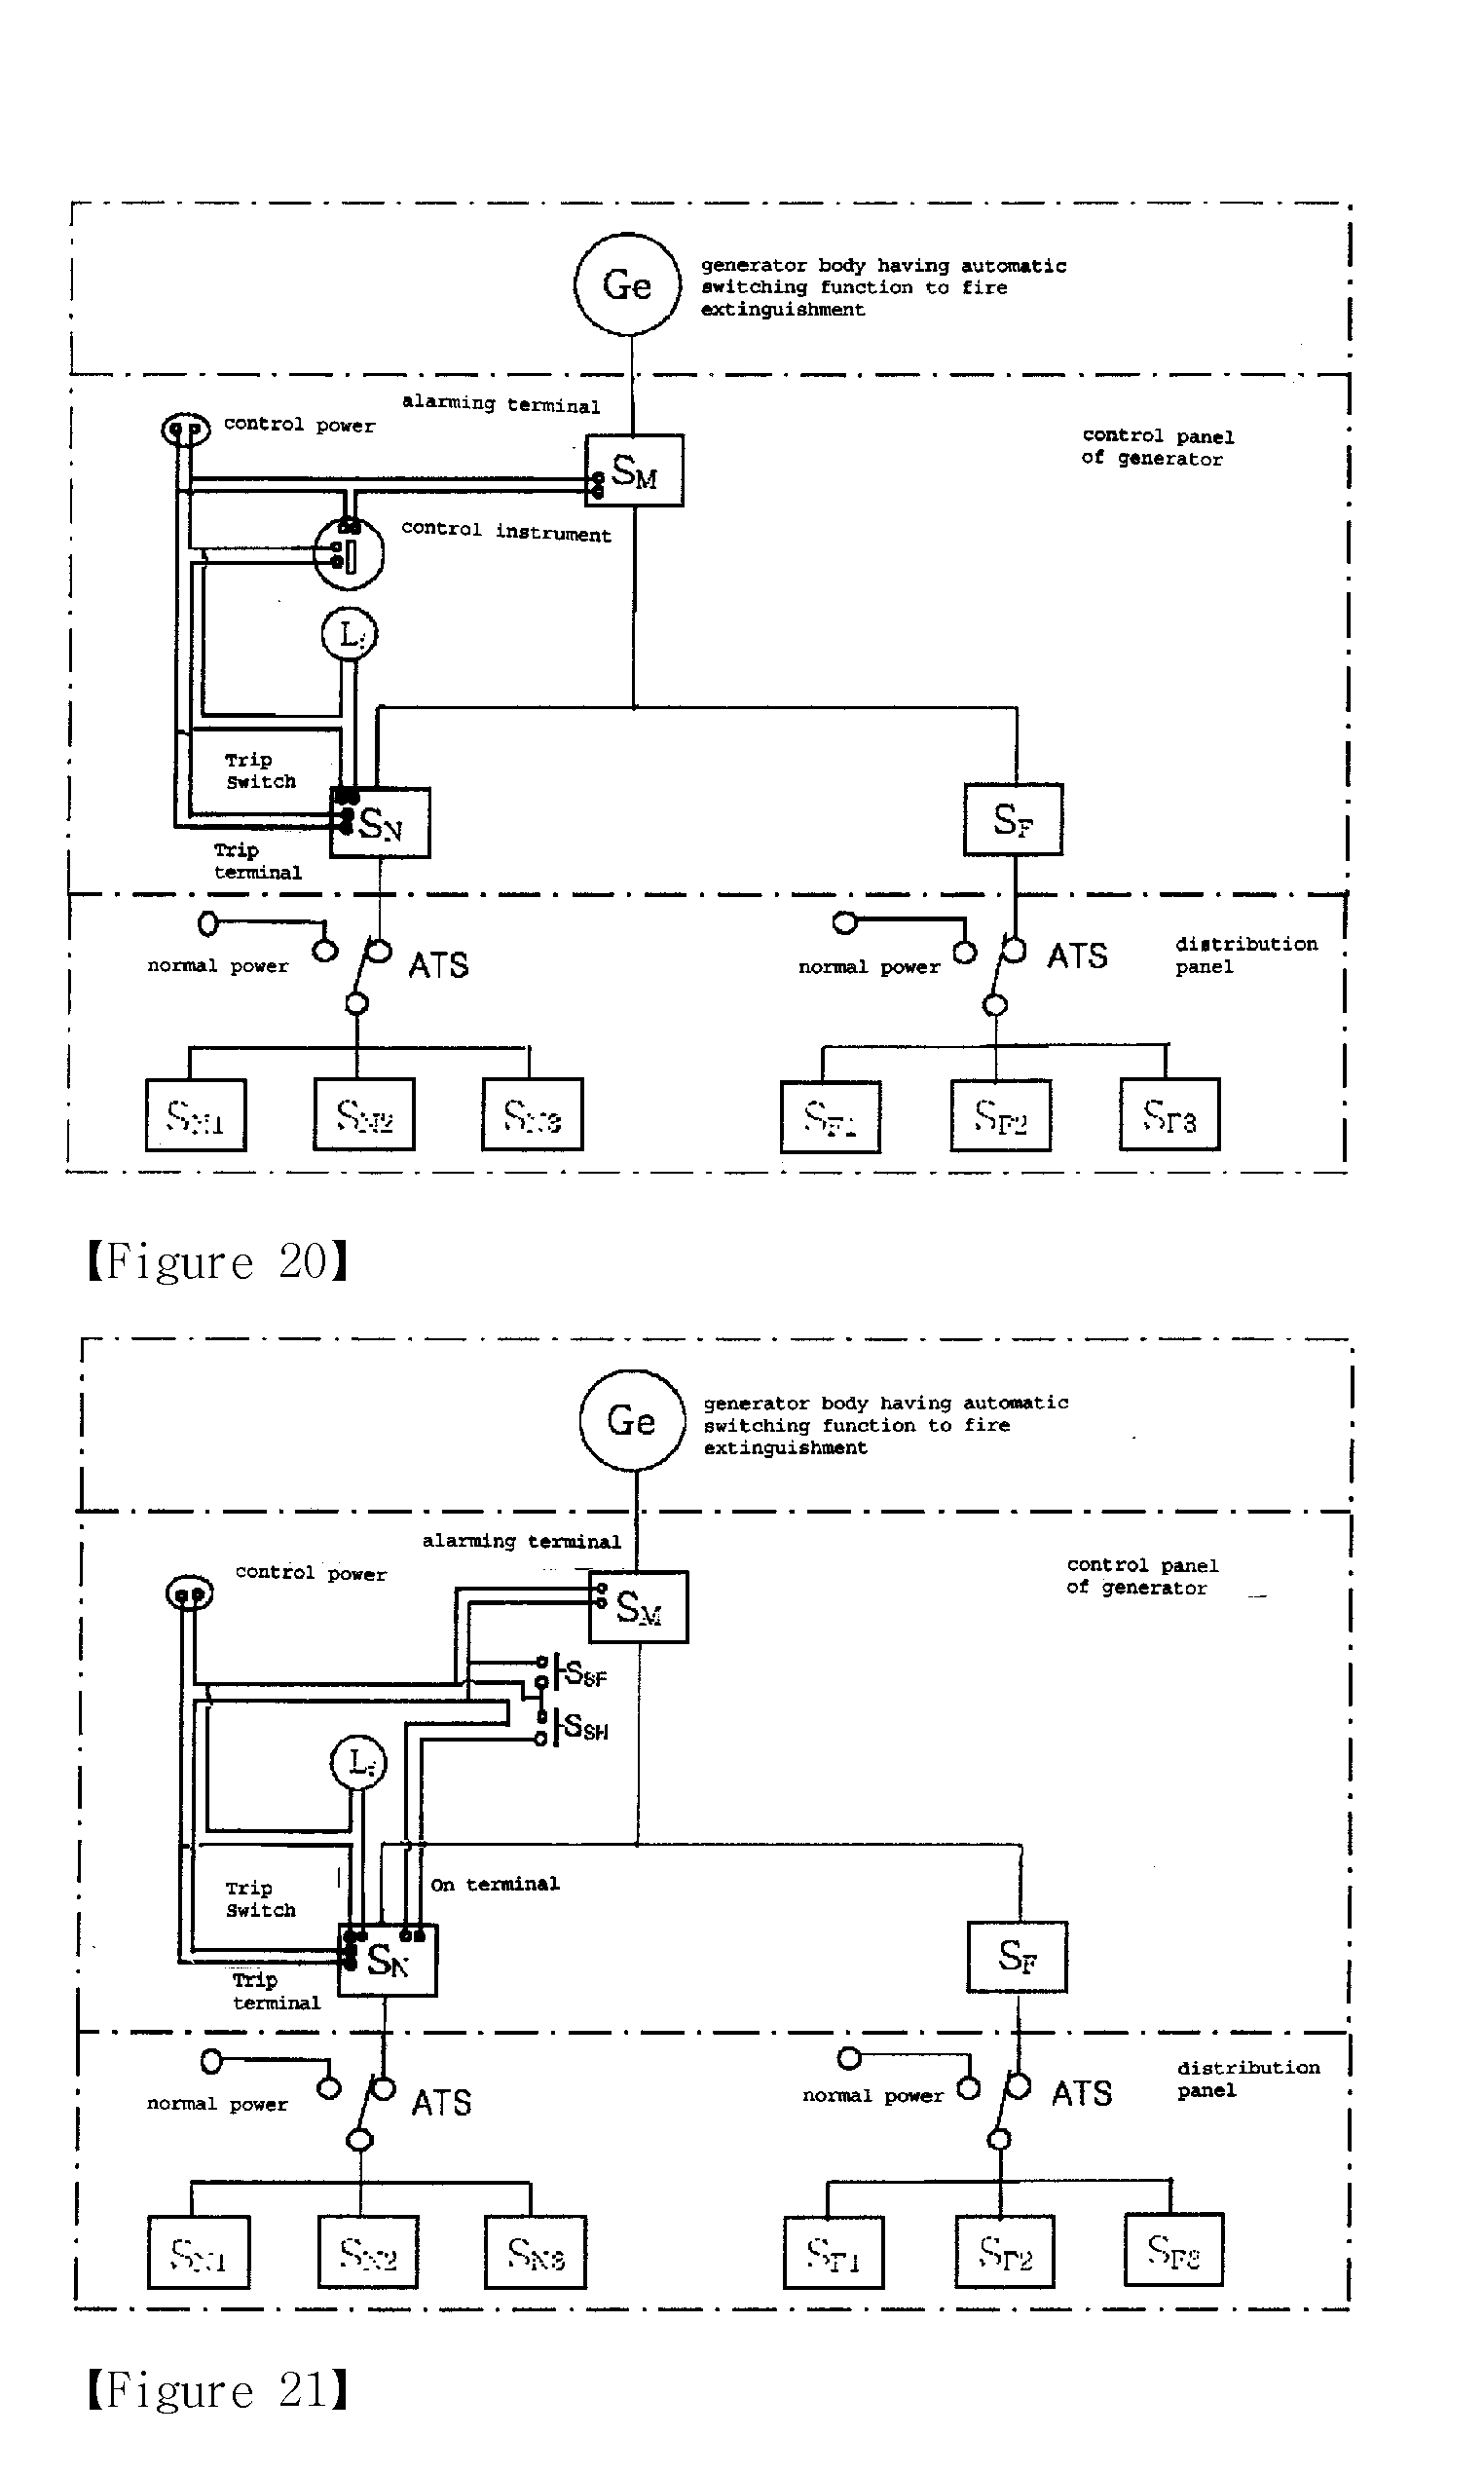 water flow switch wiring diagram Collection-Tamper and Flow Switch Wiring Diagrams Unique Switch Symbols Wiring Diagram Ponents 9-k